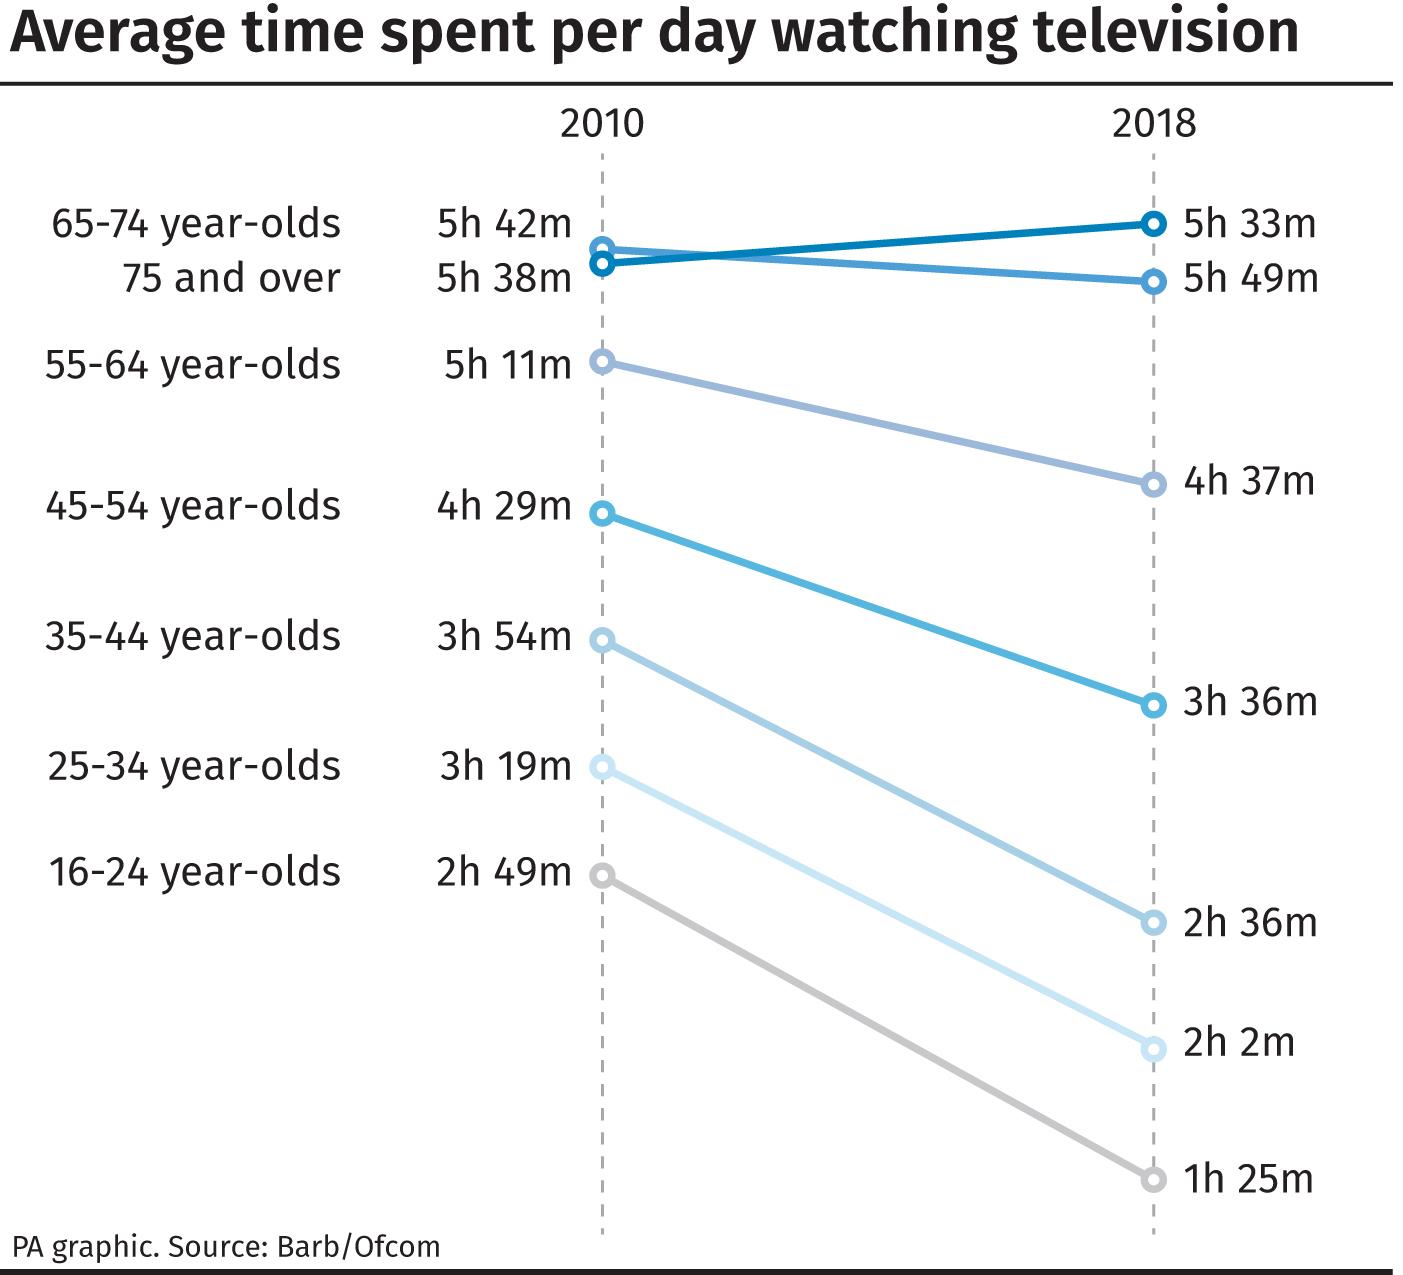 Half of UK homes subscribe to streaming services like Netflix, e4fe7e86 672c 4245 8834 cf28edf01ca2%, daily-dad%